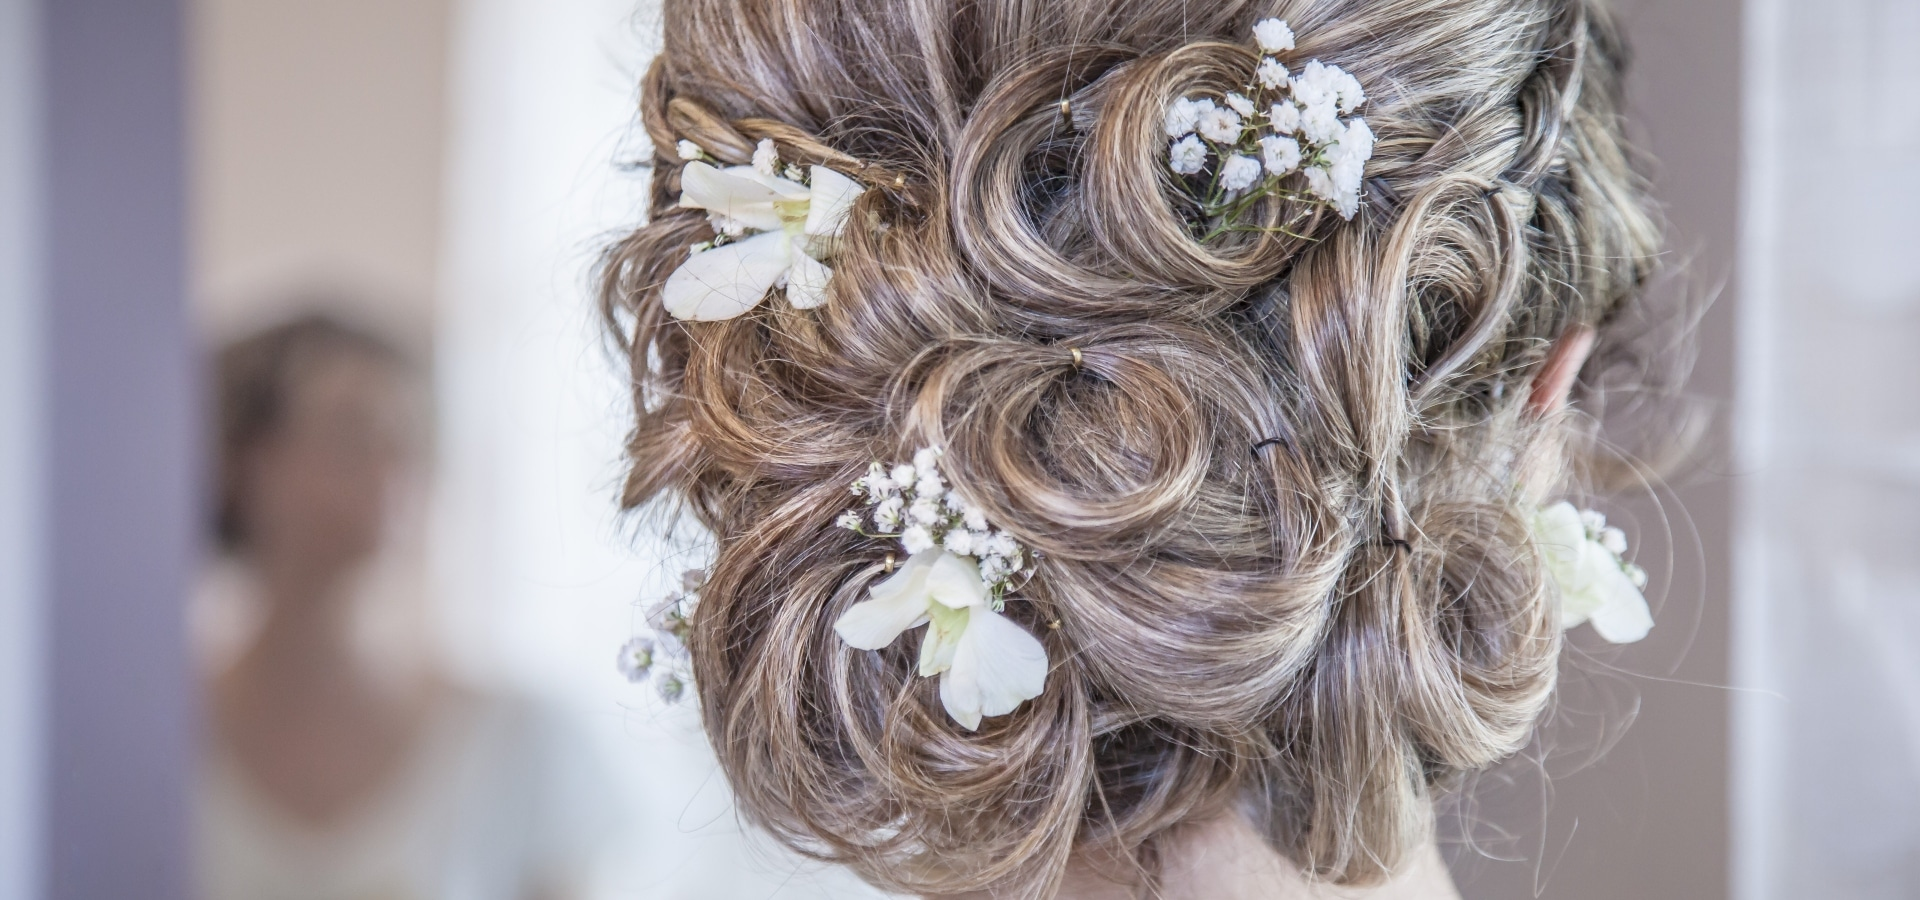 Hero image for To Updo or Not to Updo: The Great Wedding Hair Debate